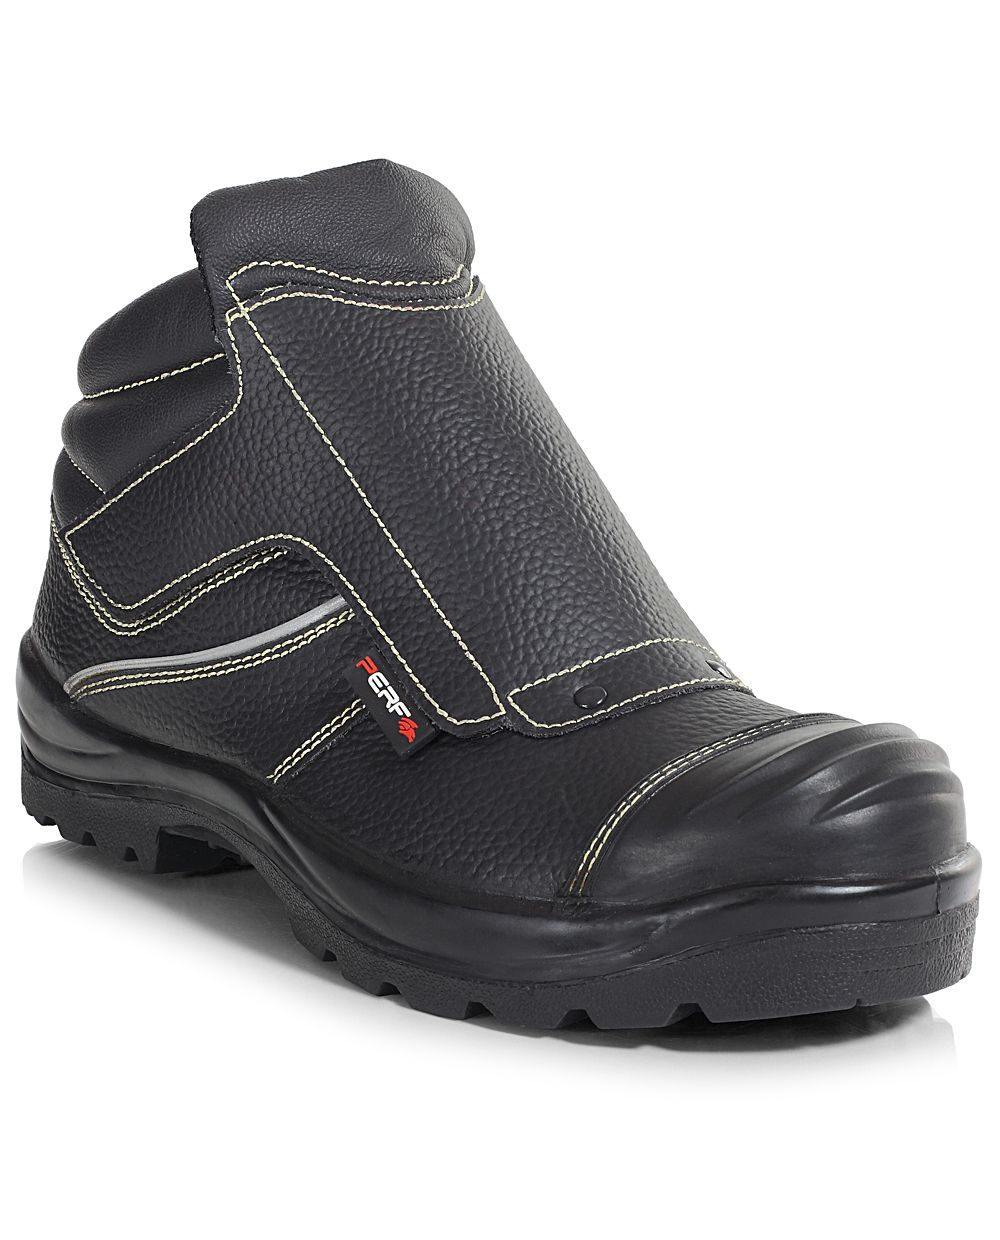 PB94C Velcro Ankle Length Welders Boot